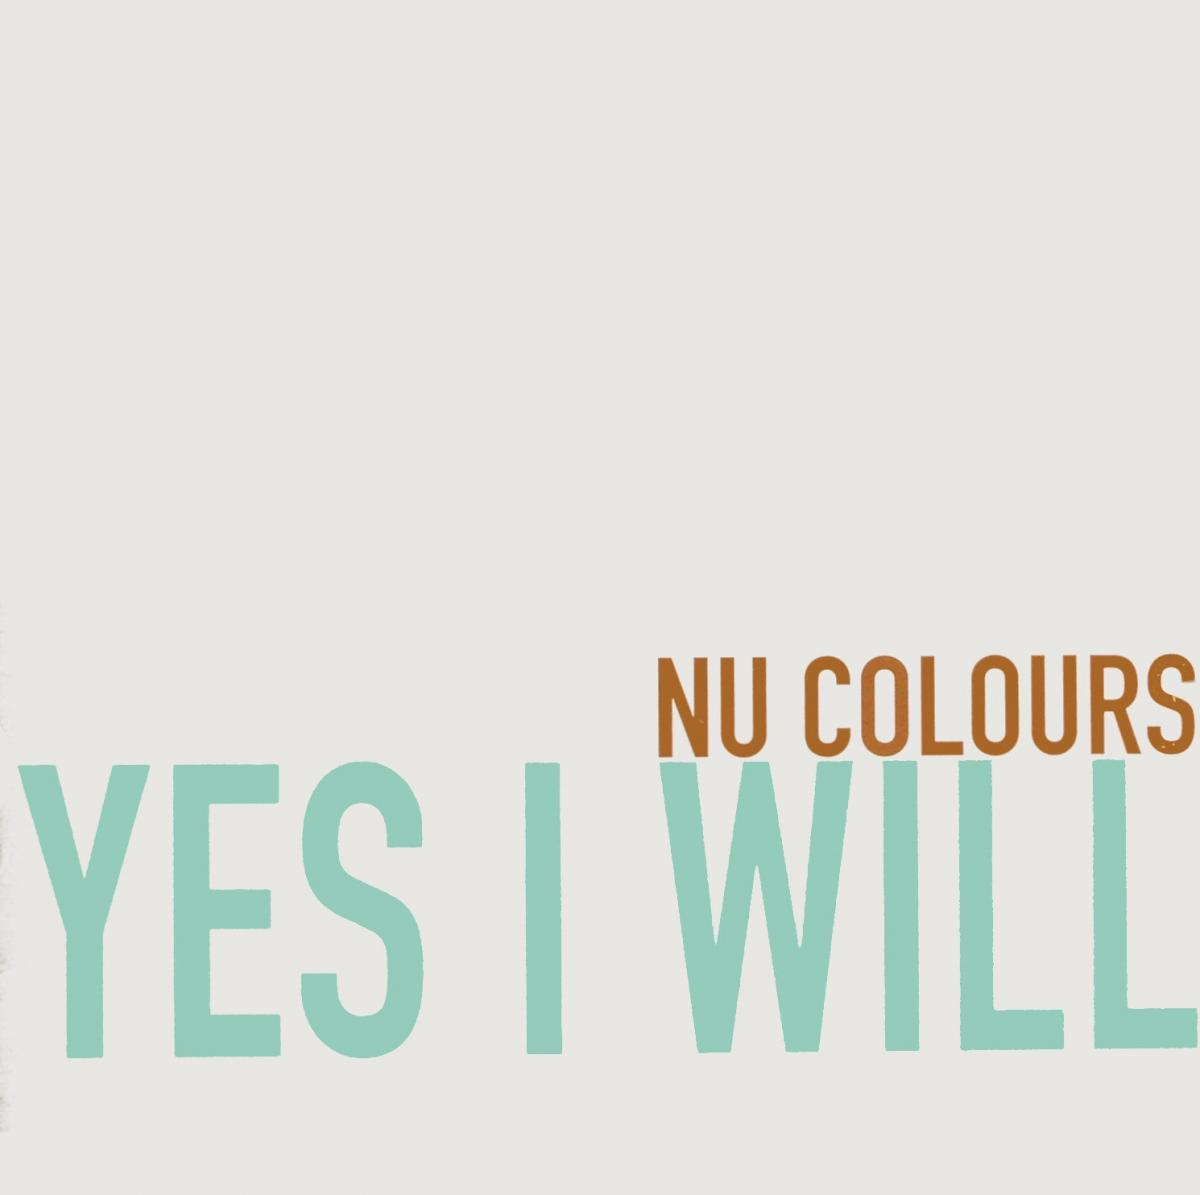 """Nu Colours - Yes I Will [12"""" Maxi]"""